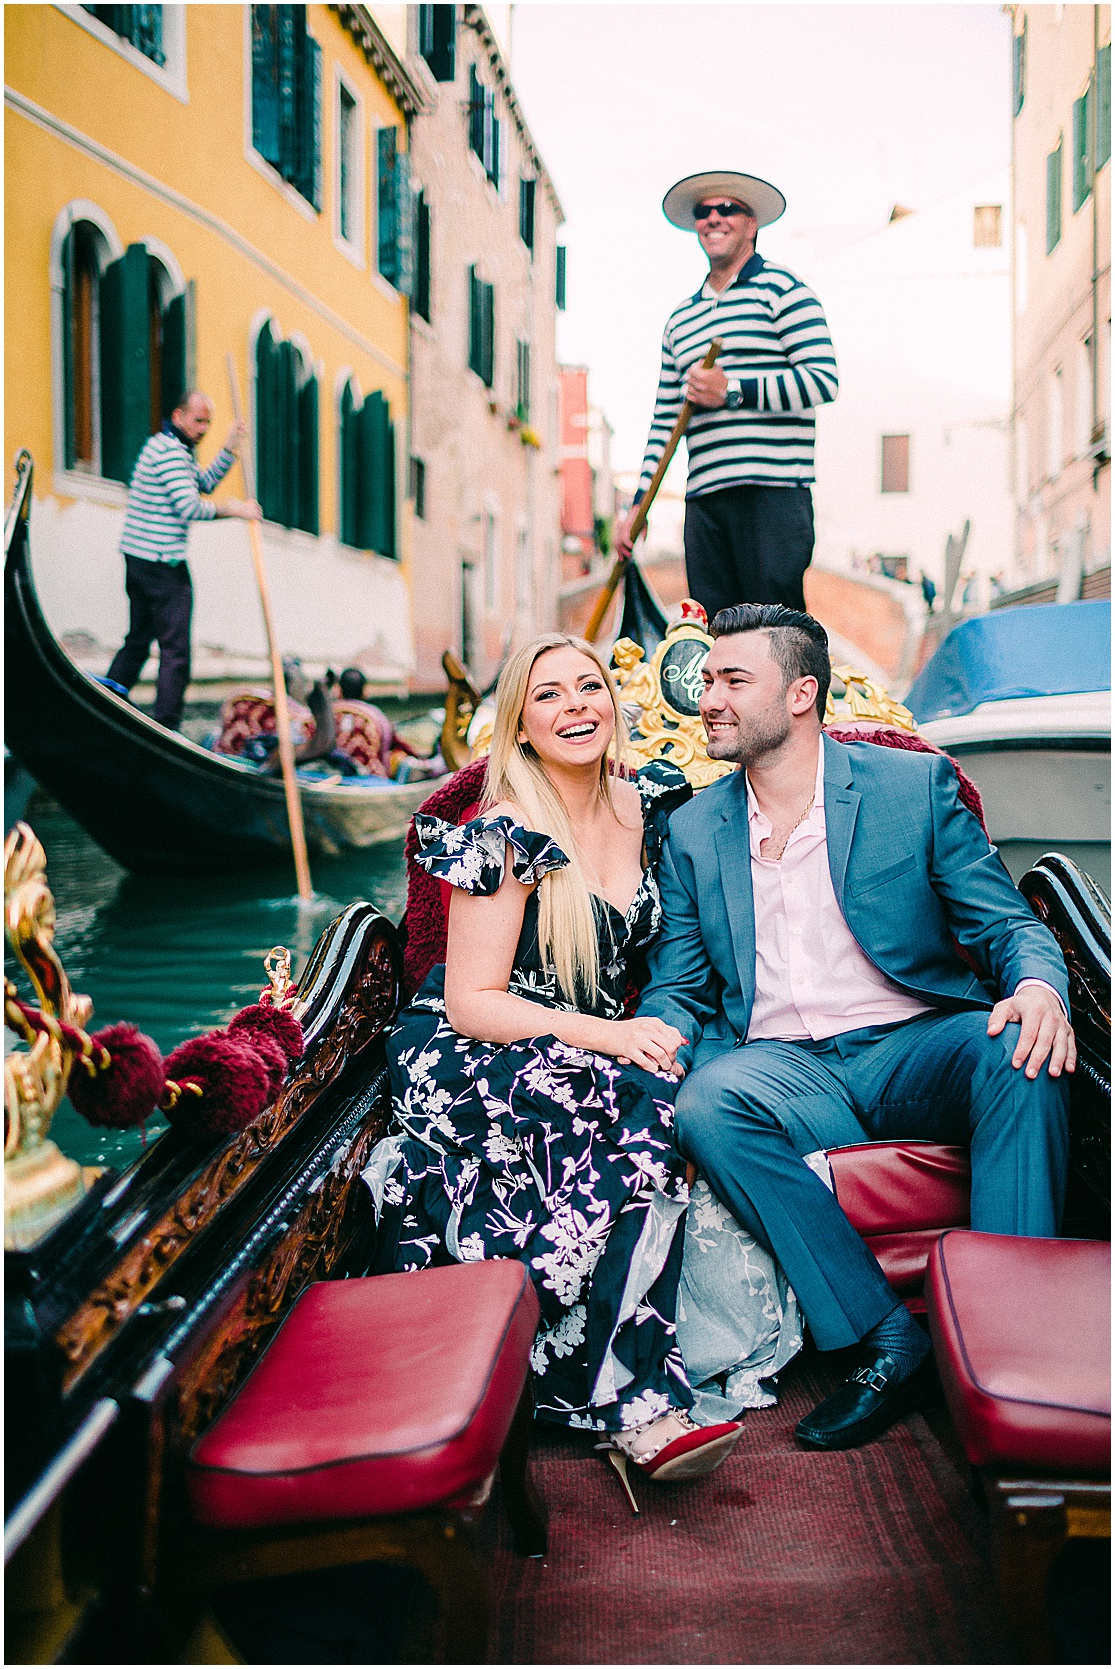 couple-photoshoot-in-venice-sunrise-stefano-degirmenci_0208.jpg